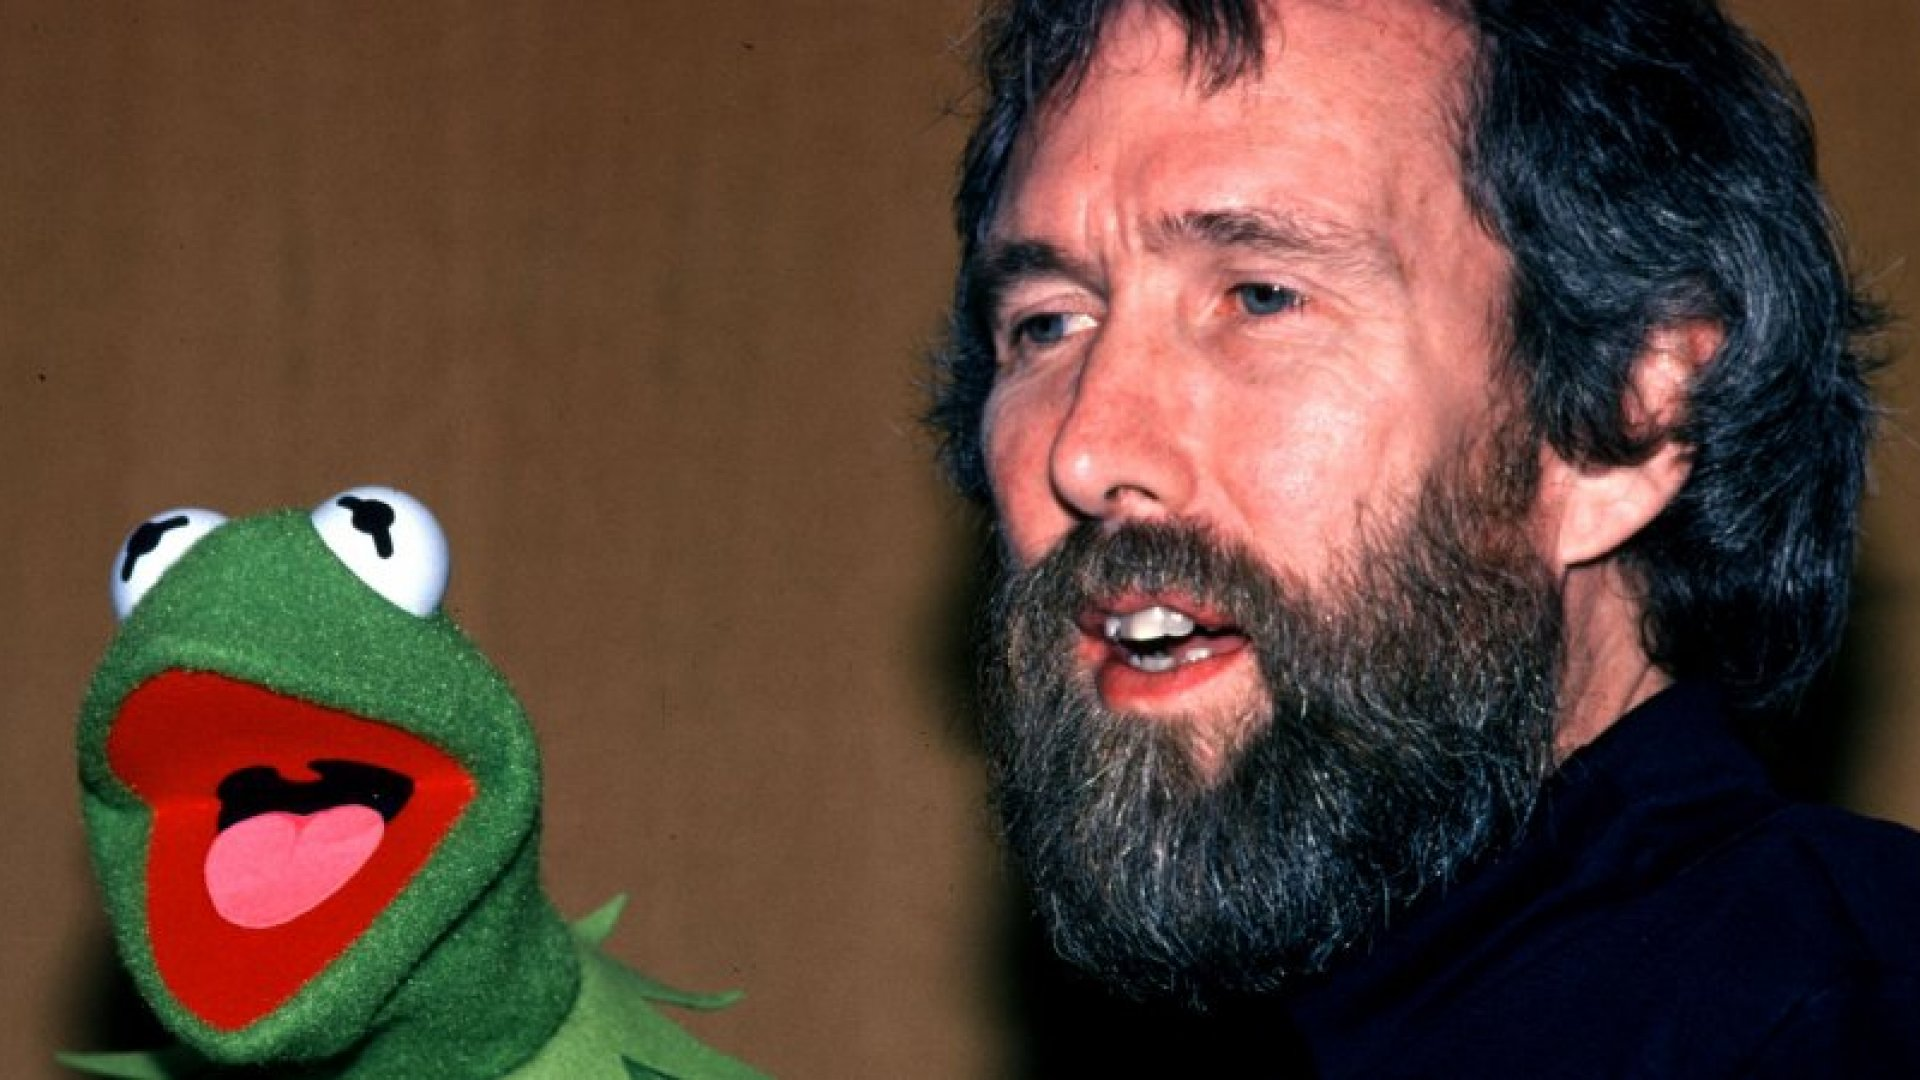 Kermit the Frog's TED Talk: The Secret to Jim Henson's Success